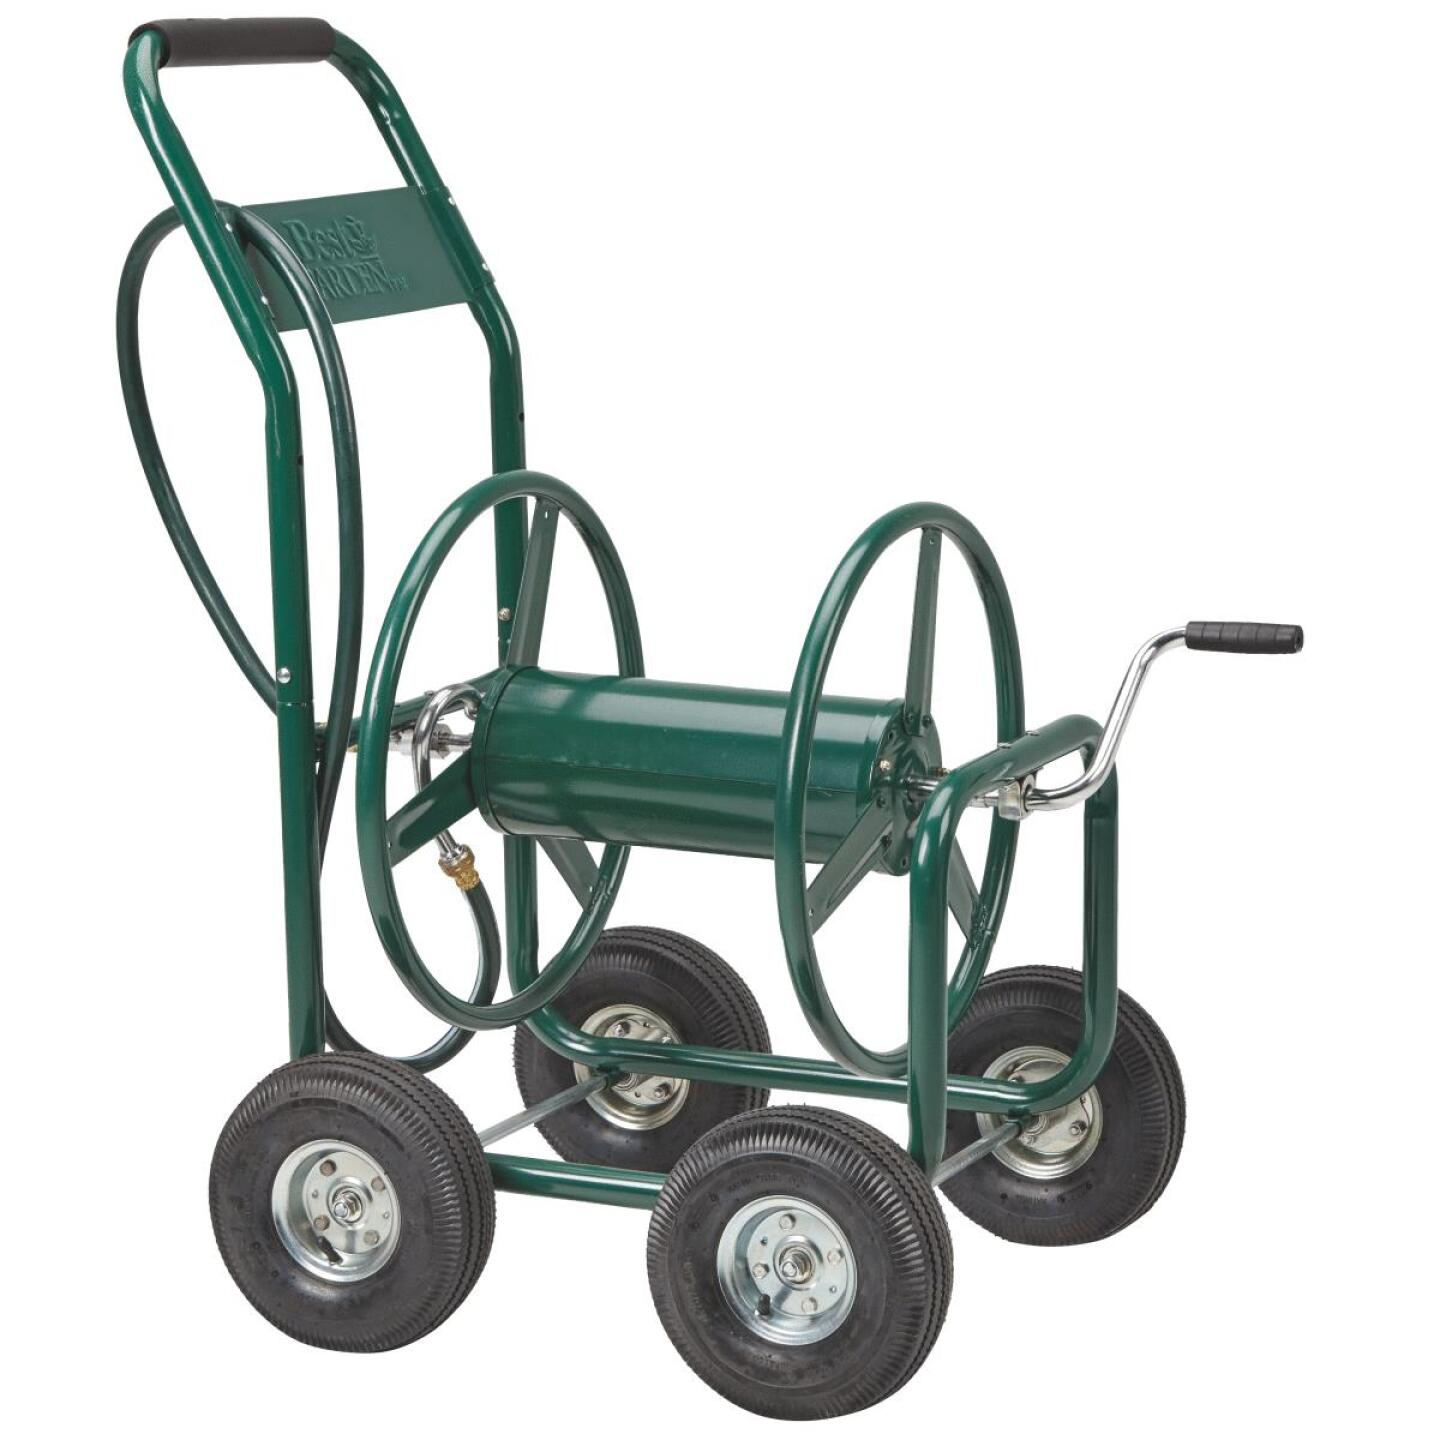 Best Garden 300 Ft. x 5/8 In. Green Metal 4-Wheel Portable Hose Reel Image 4